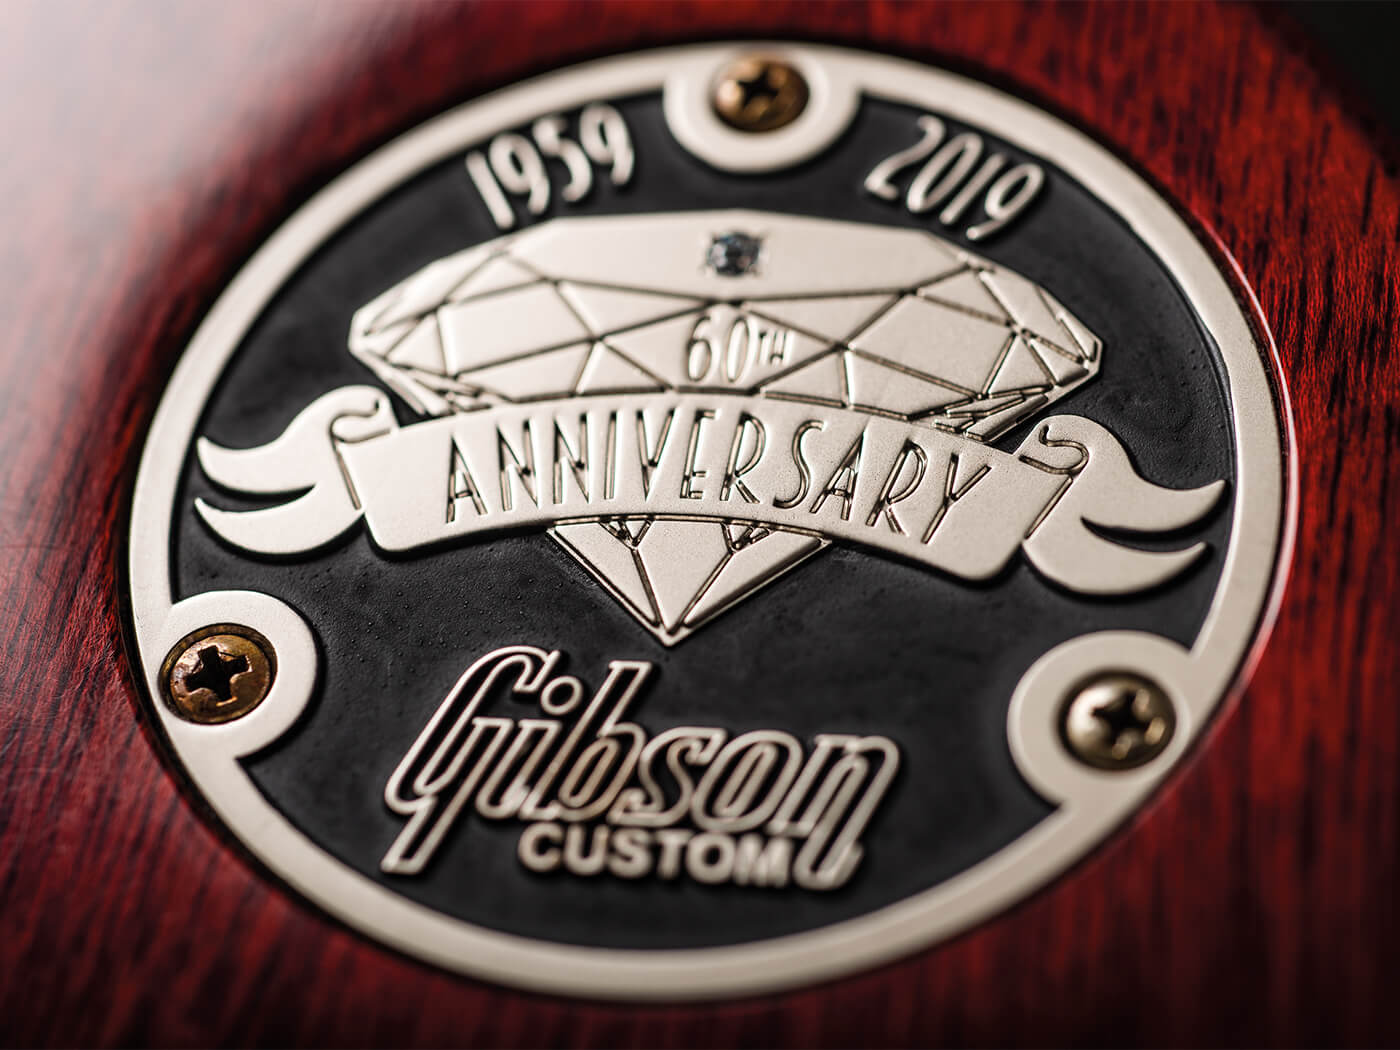 Gibson Custom 60th Anniversary 1959 Les Paul Standard commemorative plate